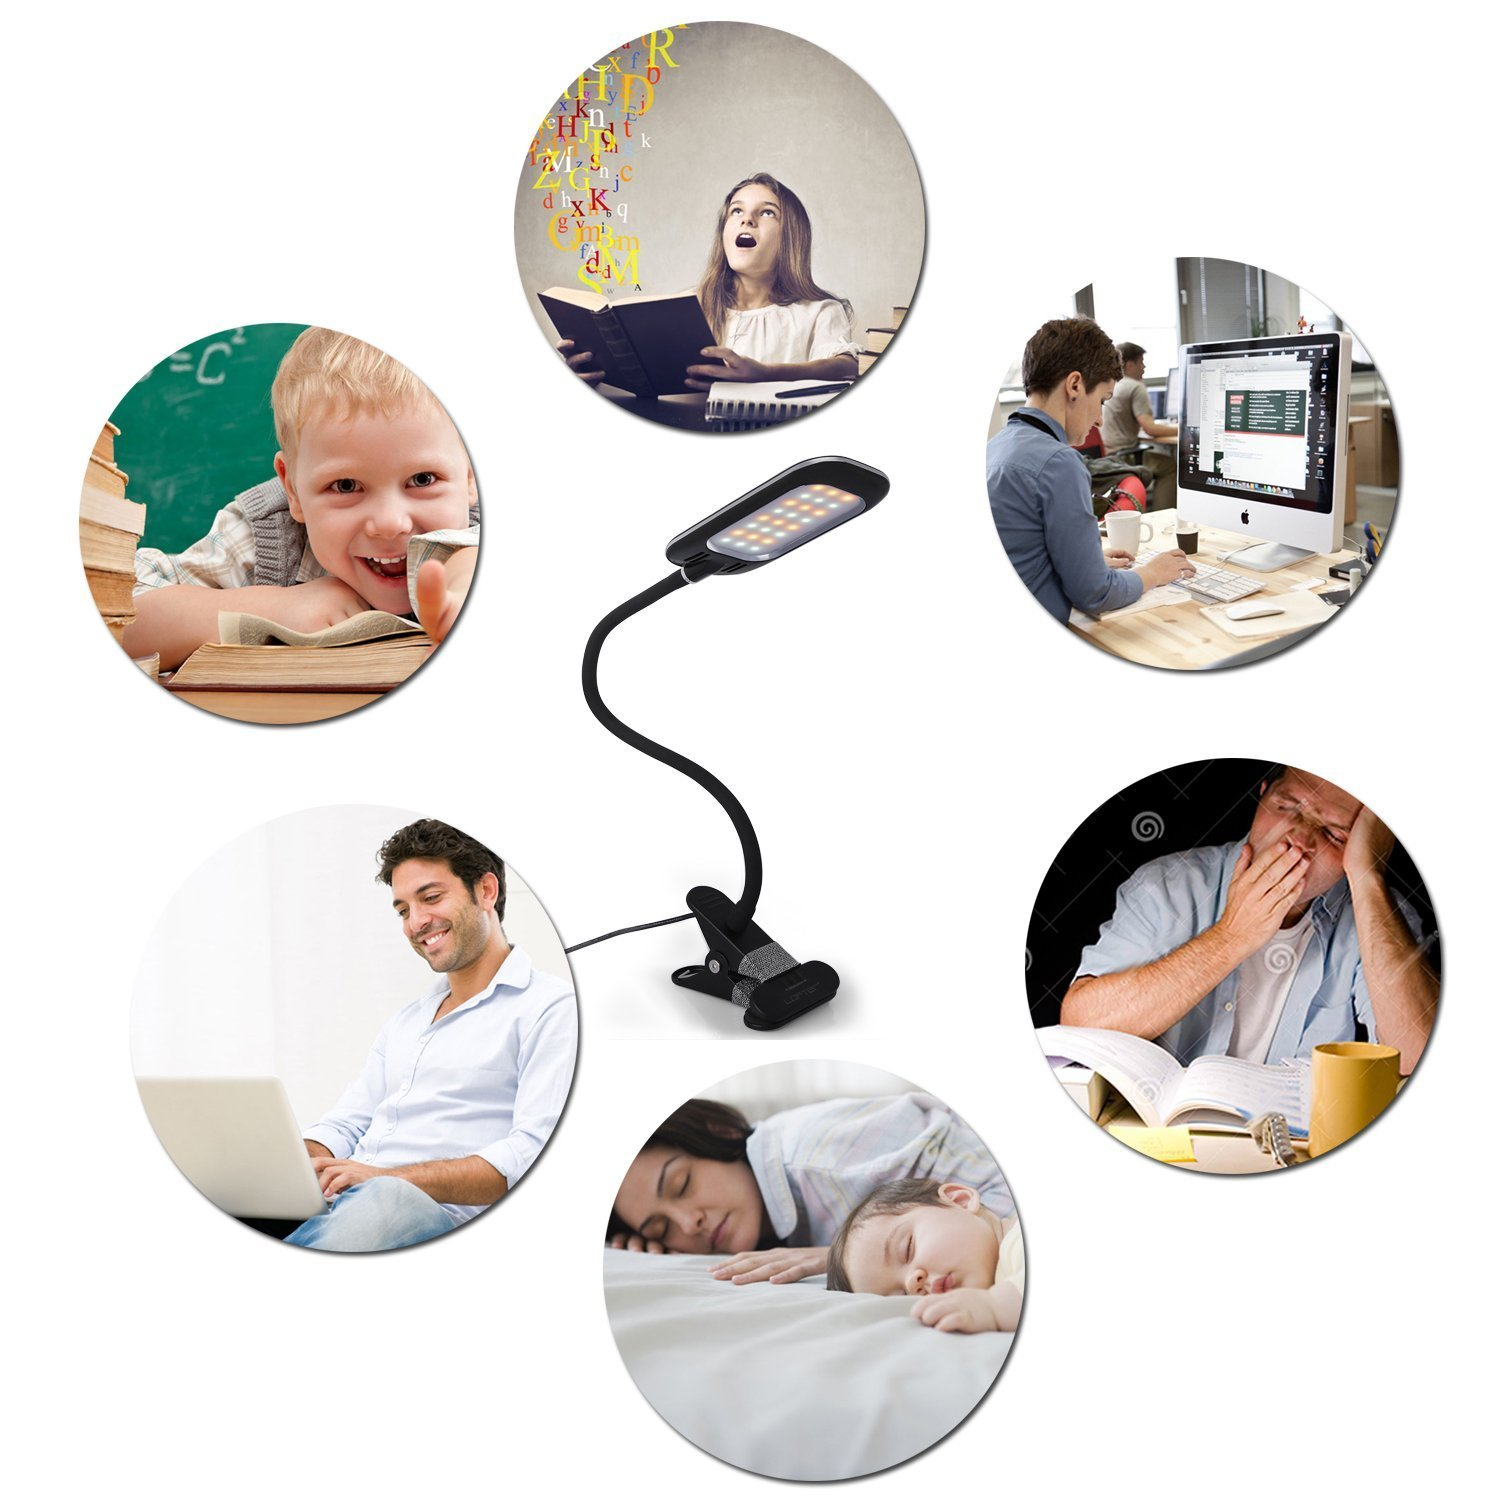 Clip on Desk Lamp Bedroom with 3 Color Modes,11 Dimming Levels 5W Adapter Included Eyocean Clamp Reading Light for Bed Headboard Black